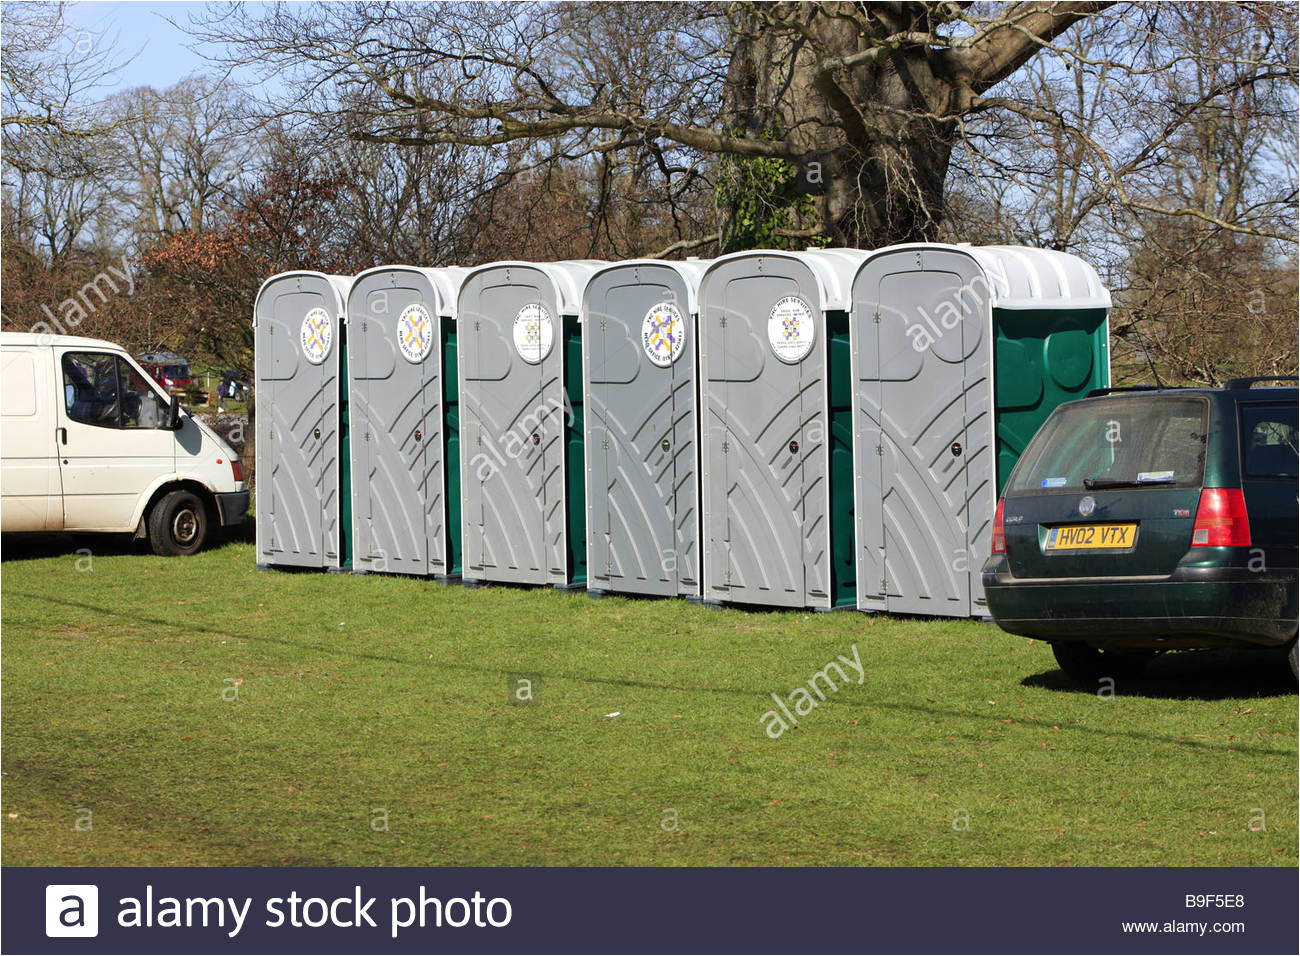 a row of portable loos or portapotty toilets at an outside event stock image